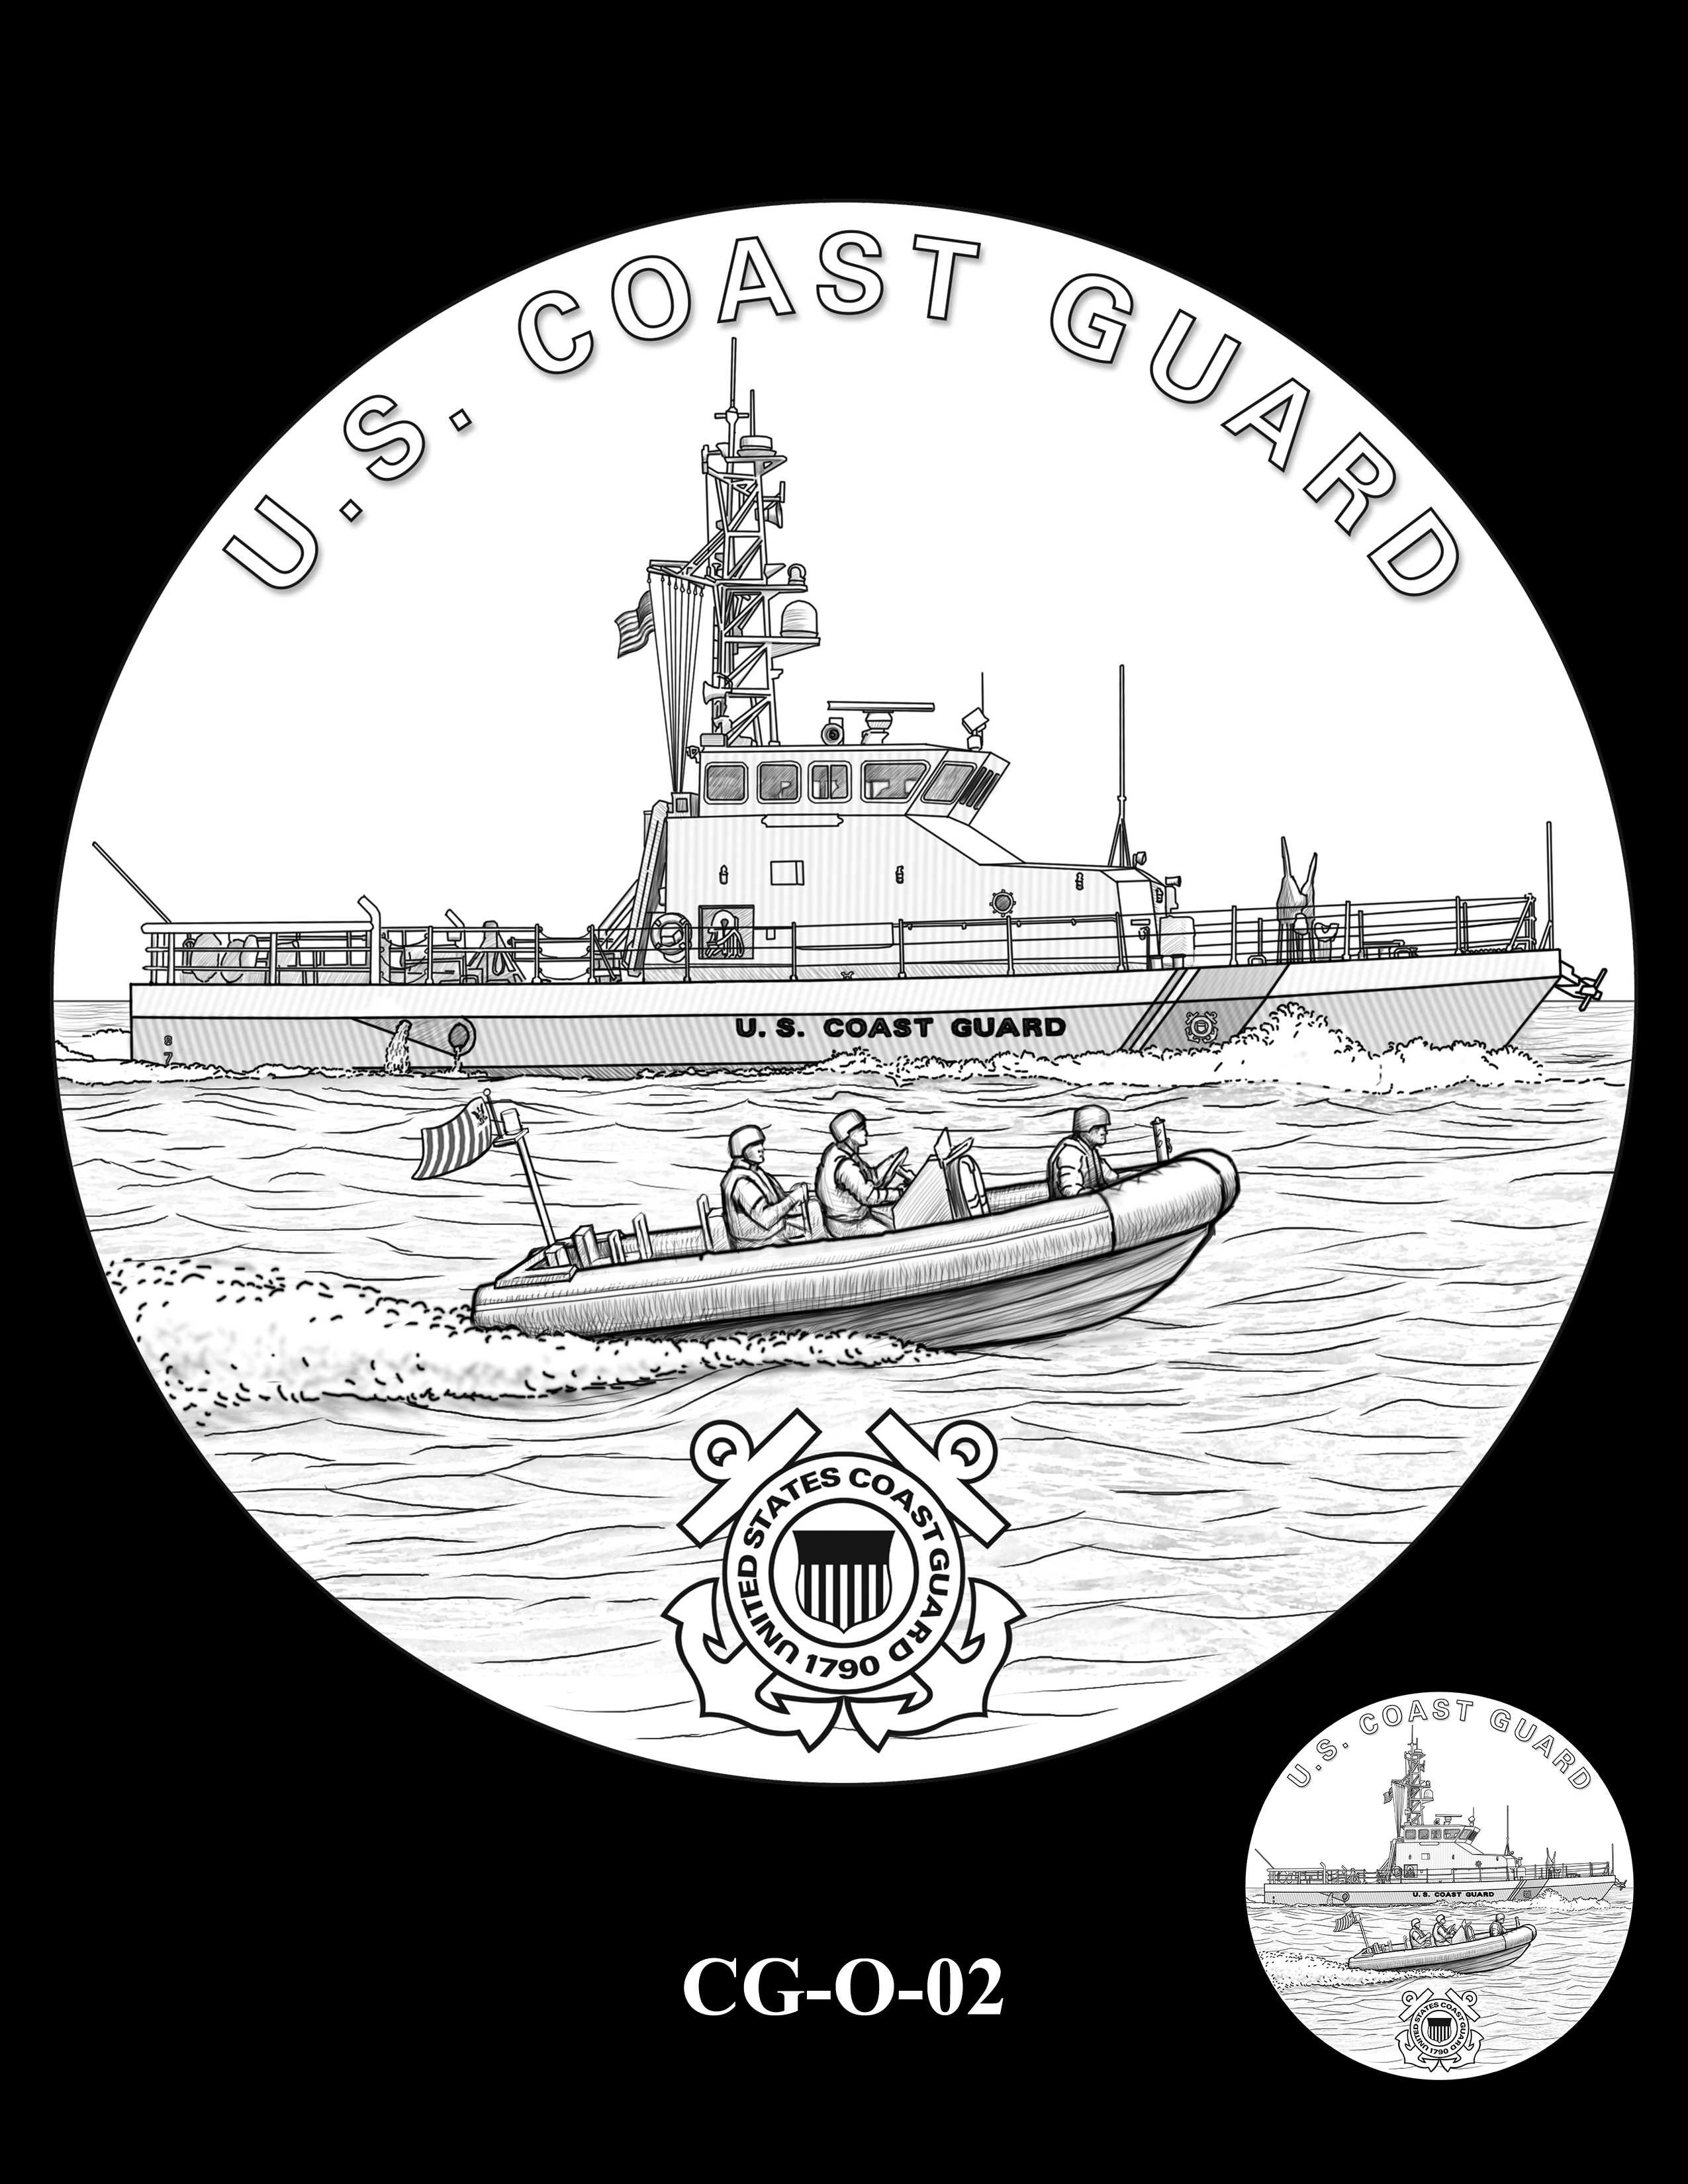 CG-O-02 -- Armed Forces Medal - Coast Guard